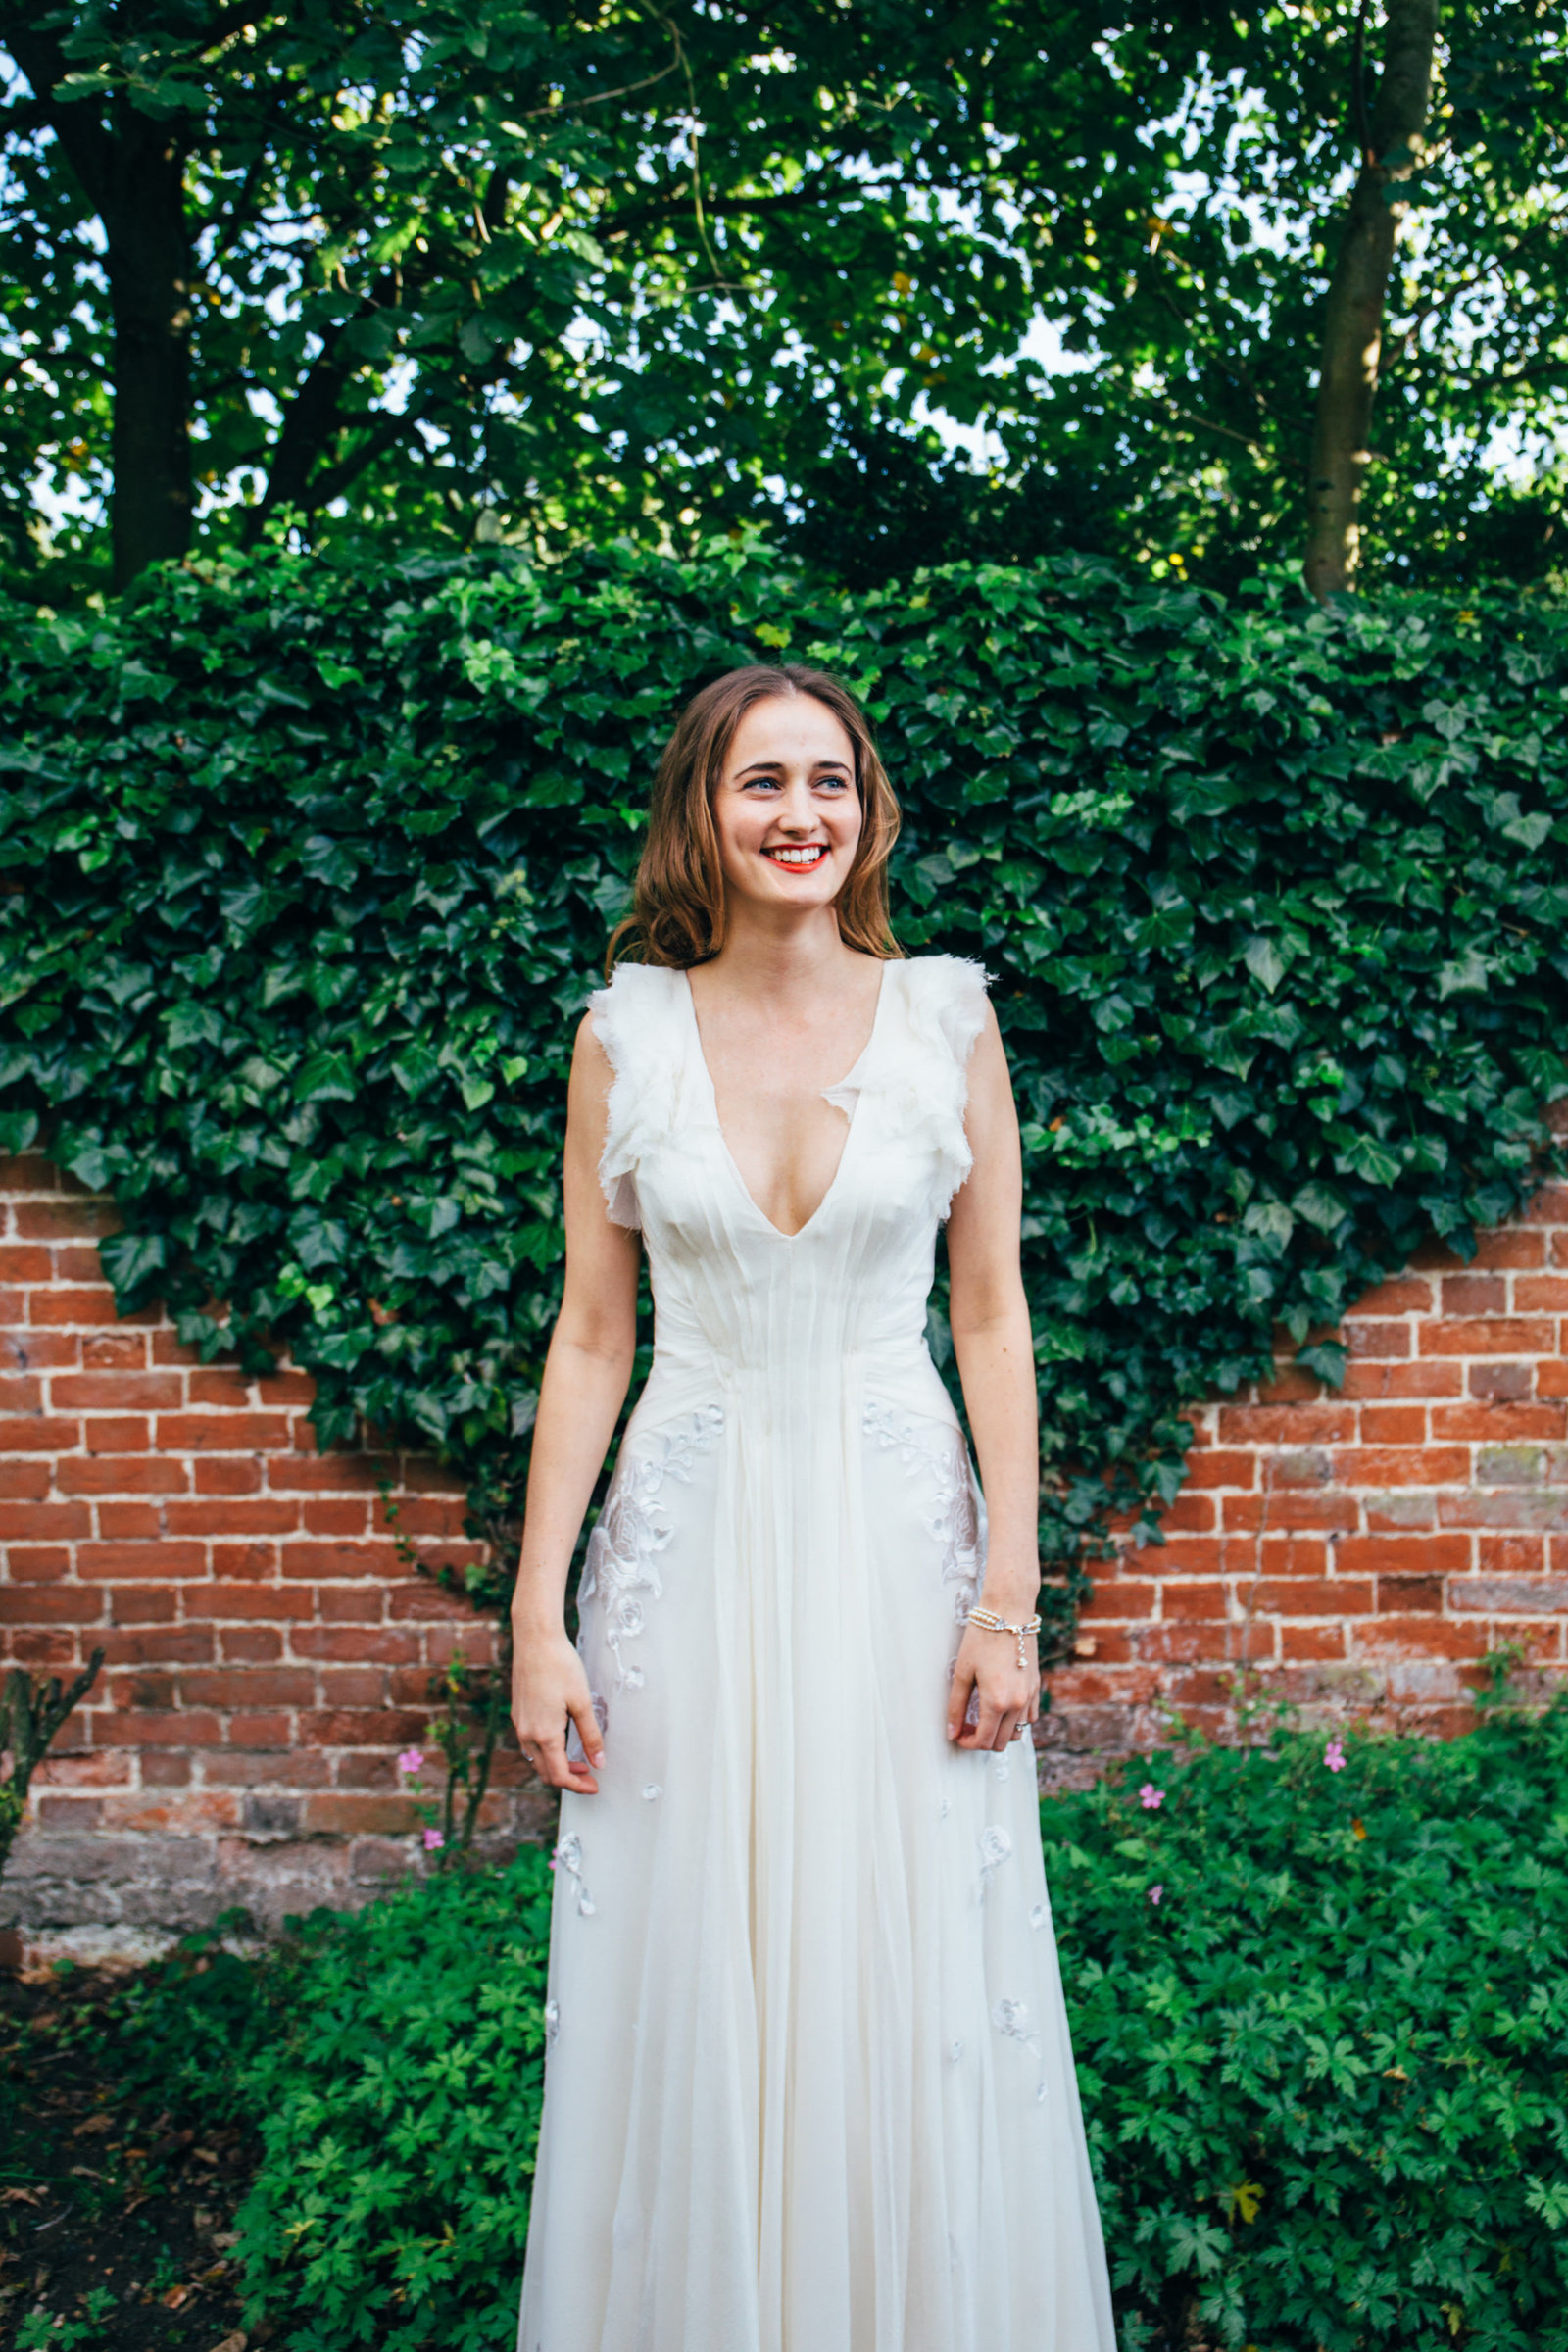 Beautiful relaxed smiling bride outside on a  sunny day after her wedding at Blackthorpe Barn, Suffolk